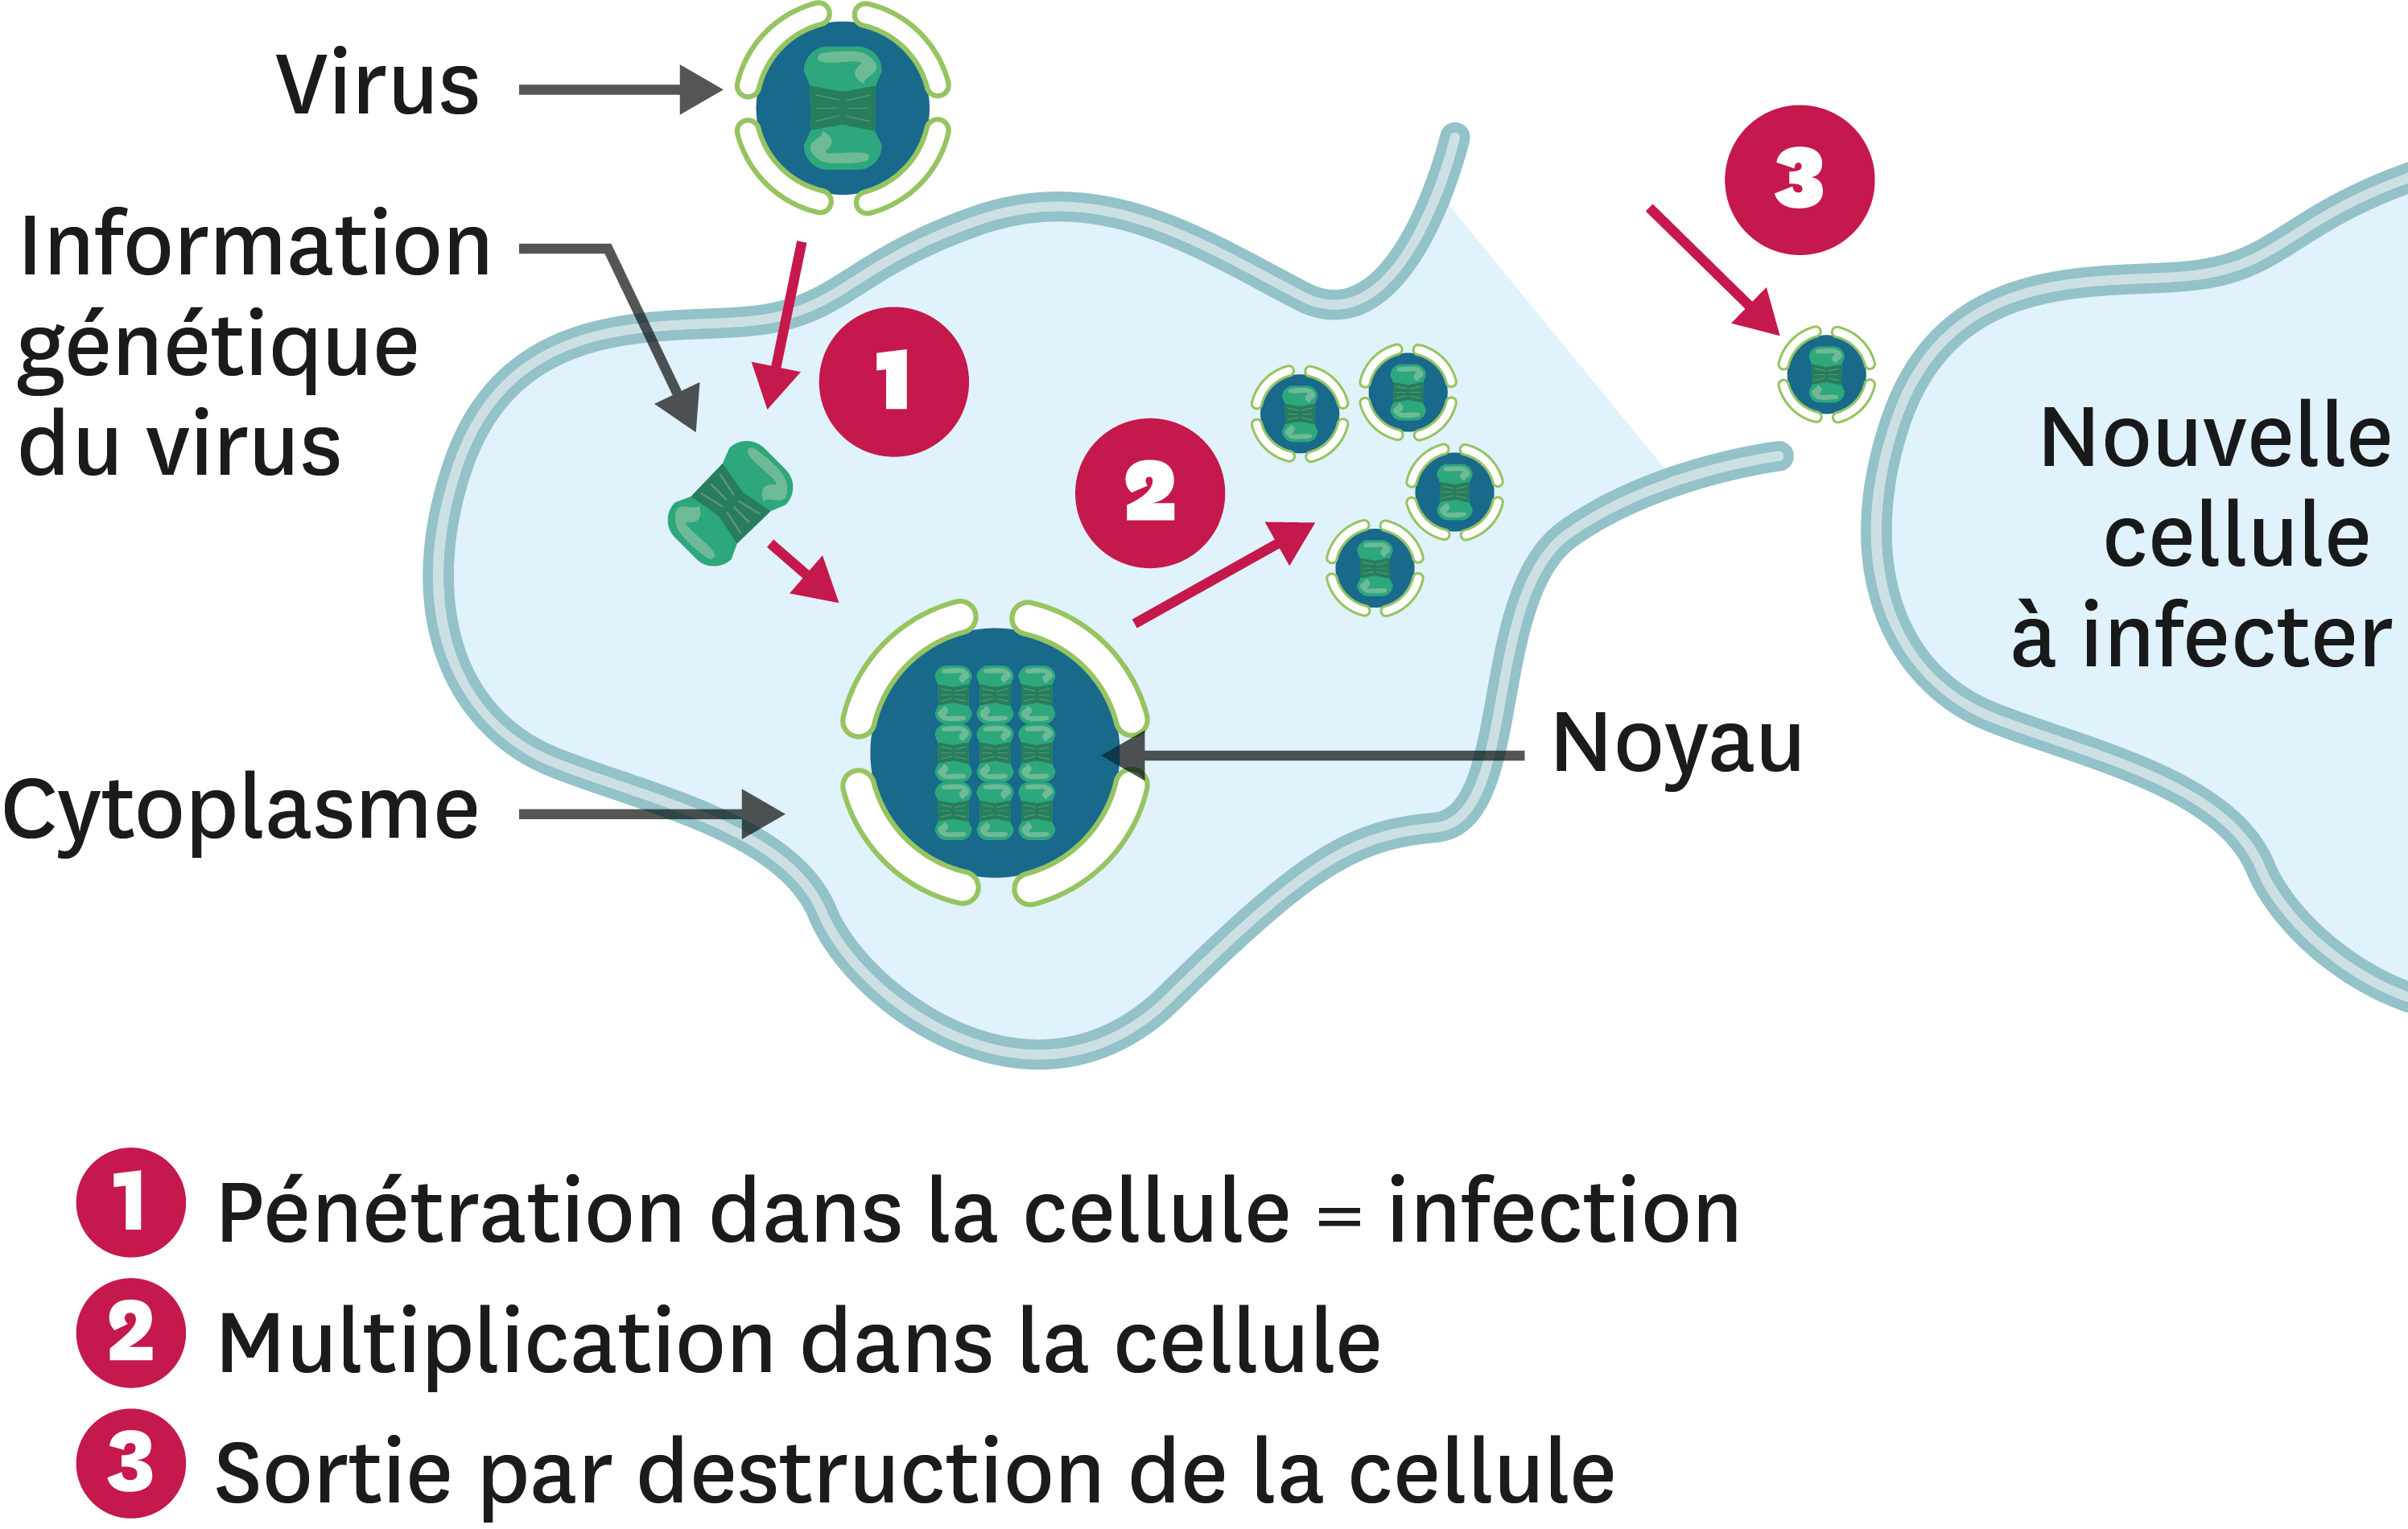 <stamp theme='svt-green1'>Doc. 3</stamp> De la contamination à l'infection dans le cas d'un virus.